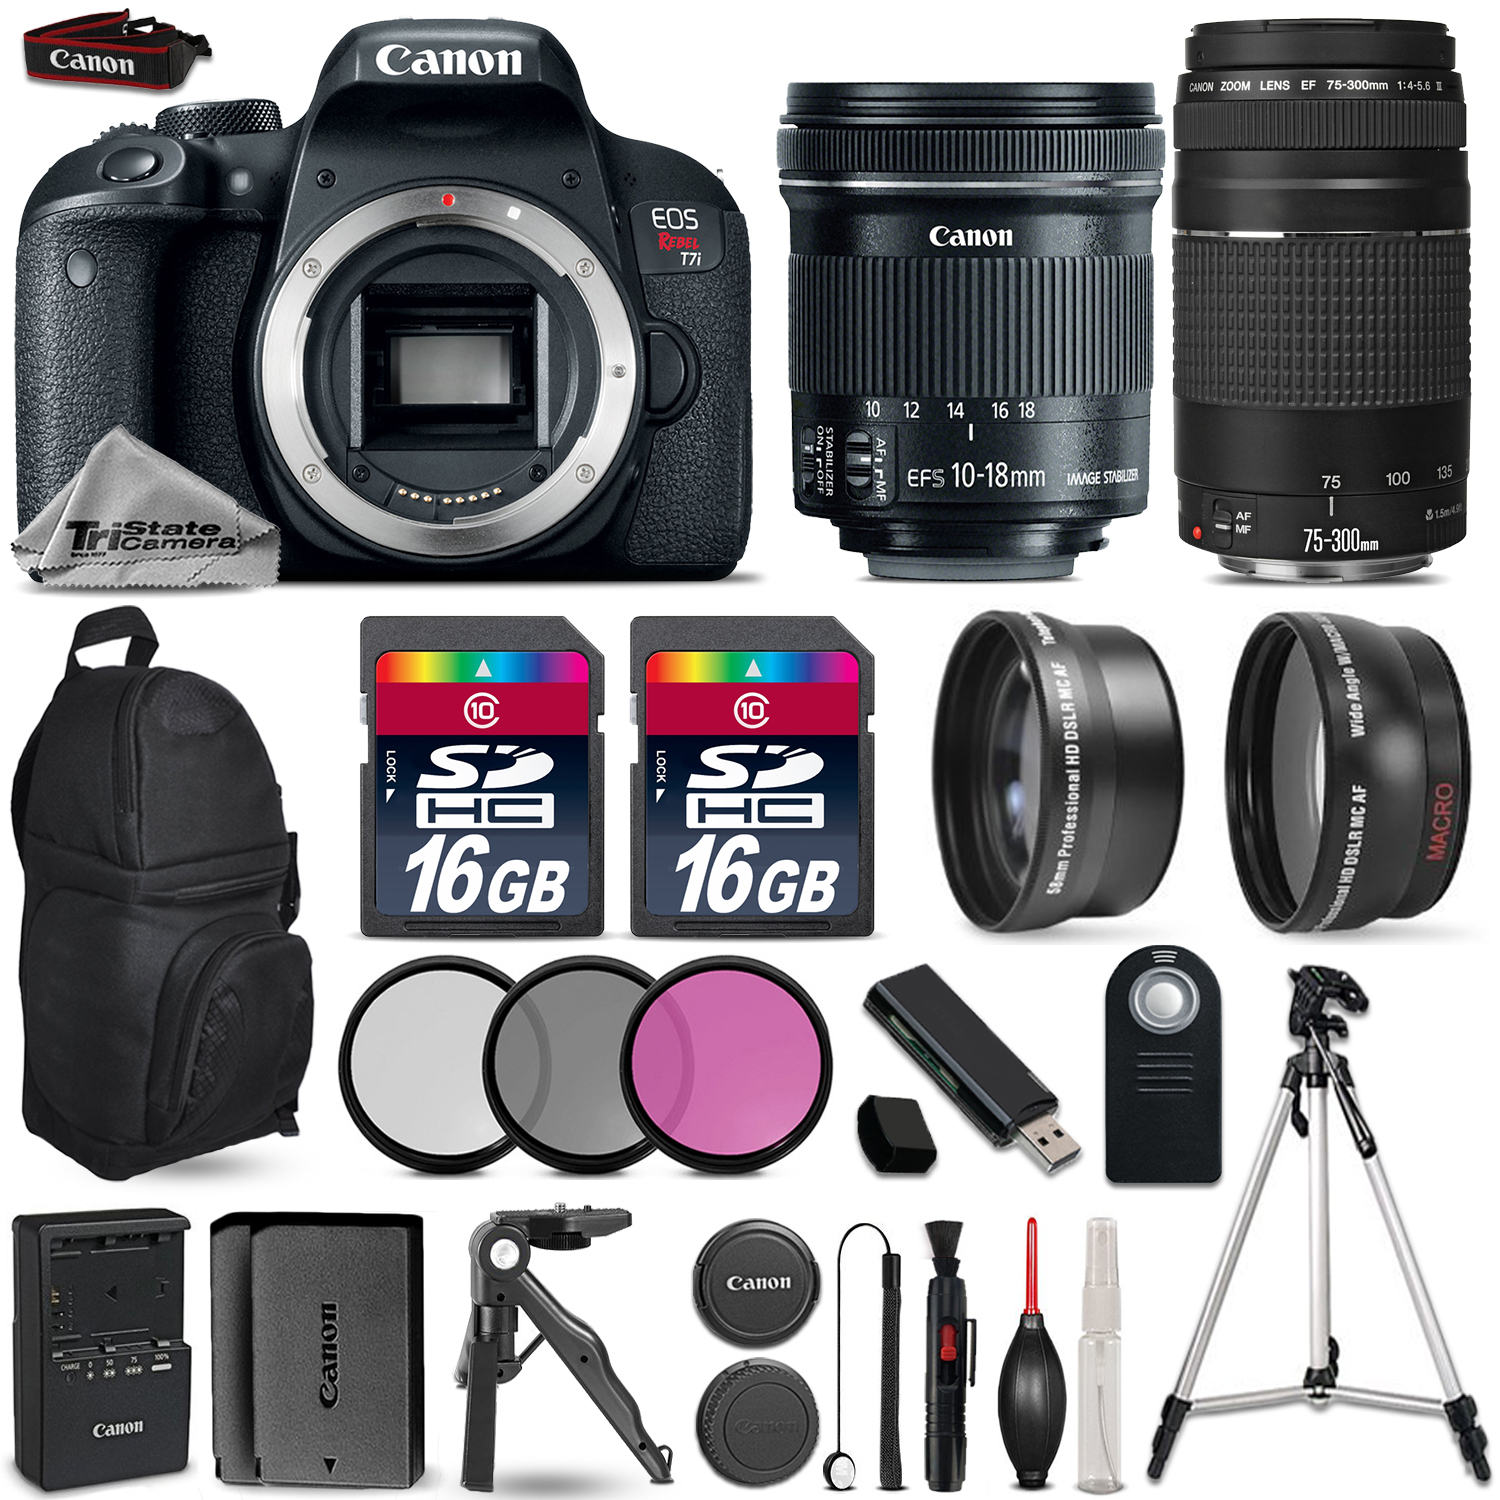 EOS Rebel T7i Camera + 10-18mm STM + 75-300mm + EXT BAT + Backpack + 32GB *FREE SHIPPING*